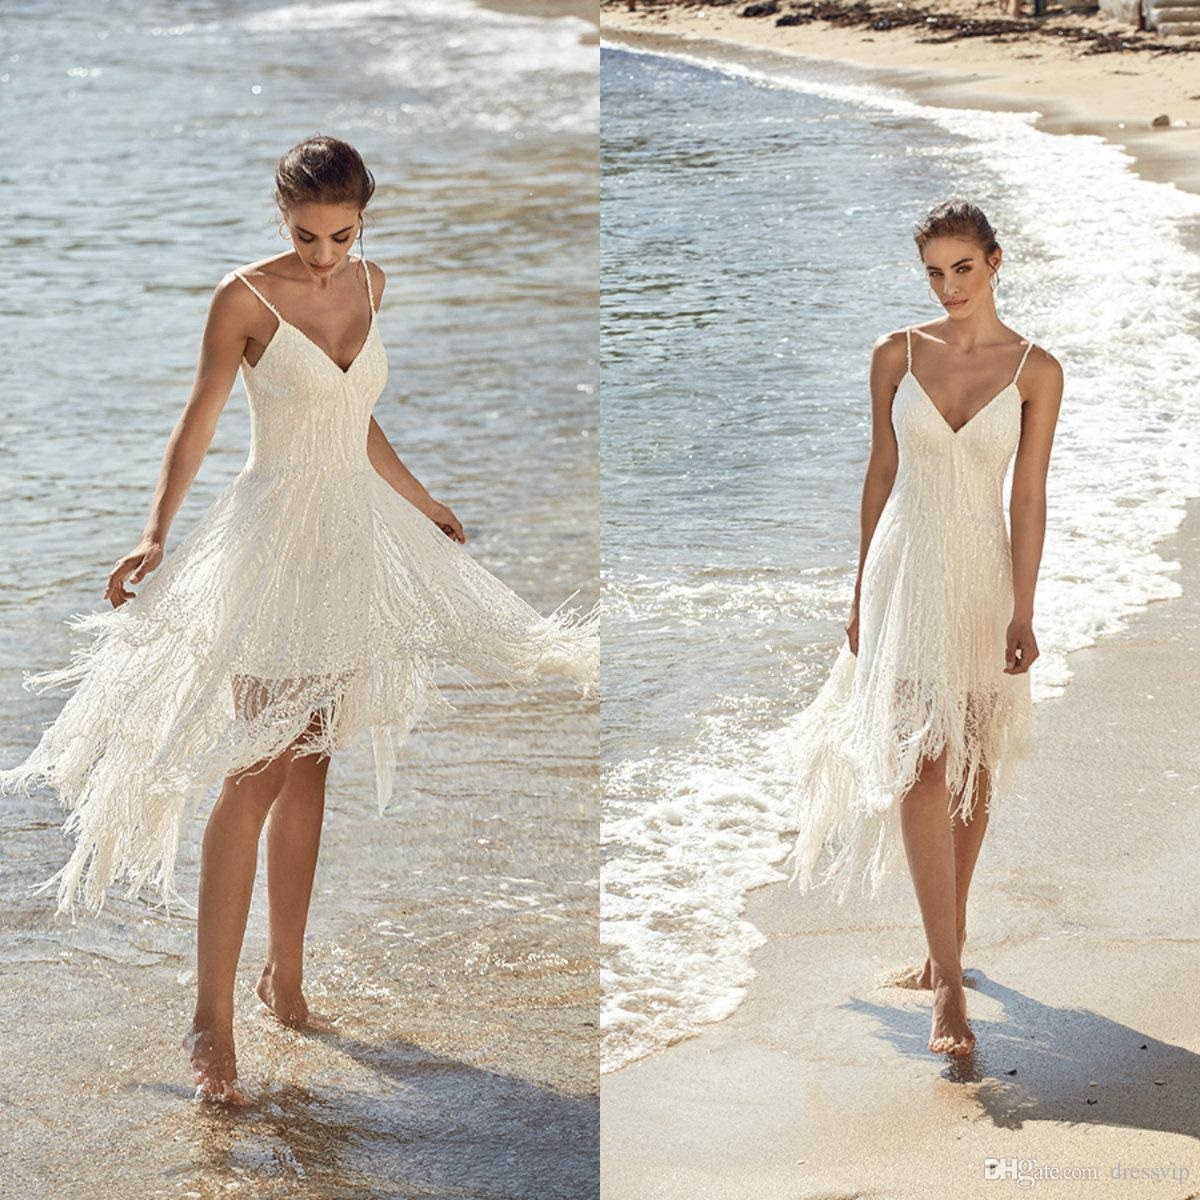 simple neckline beach wedding dress